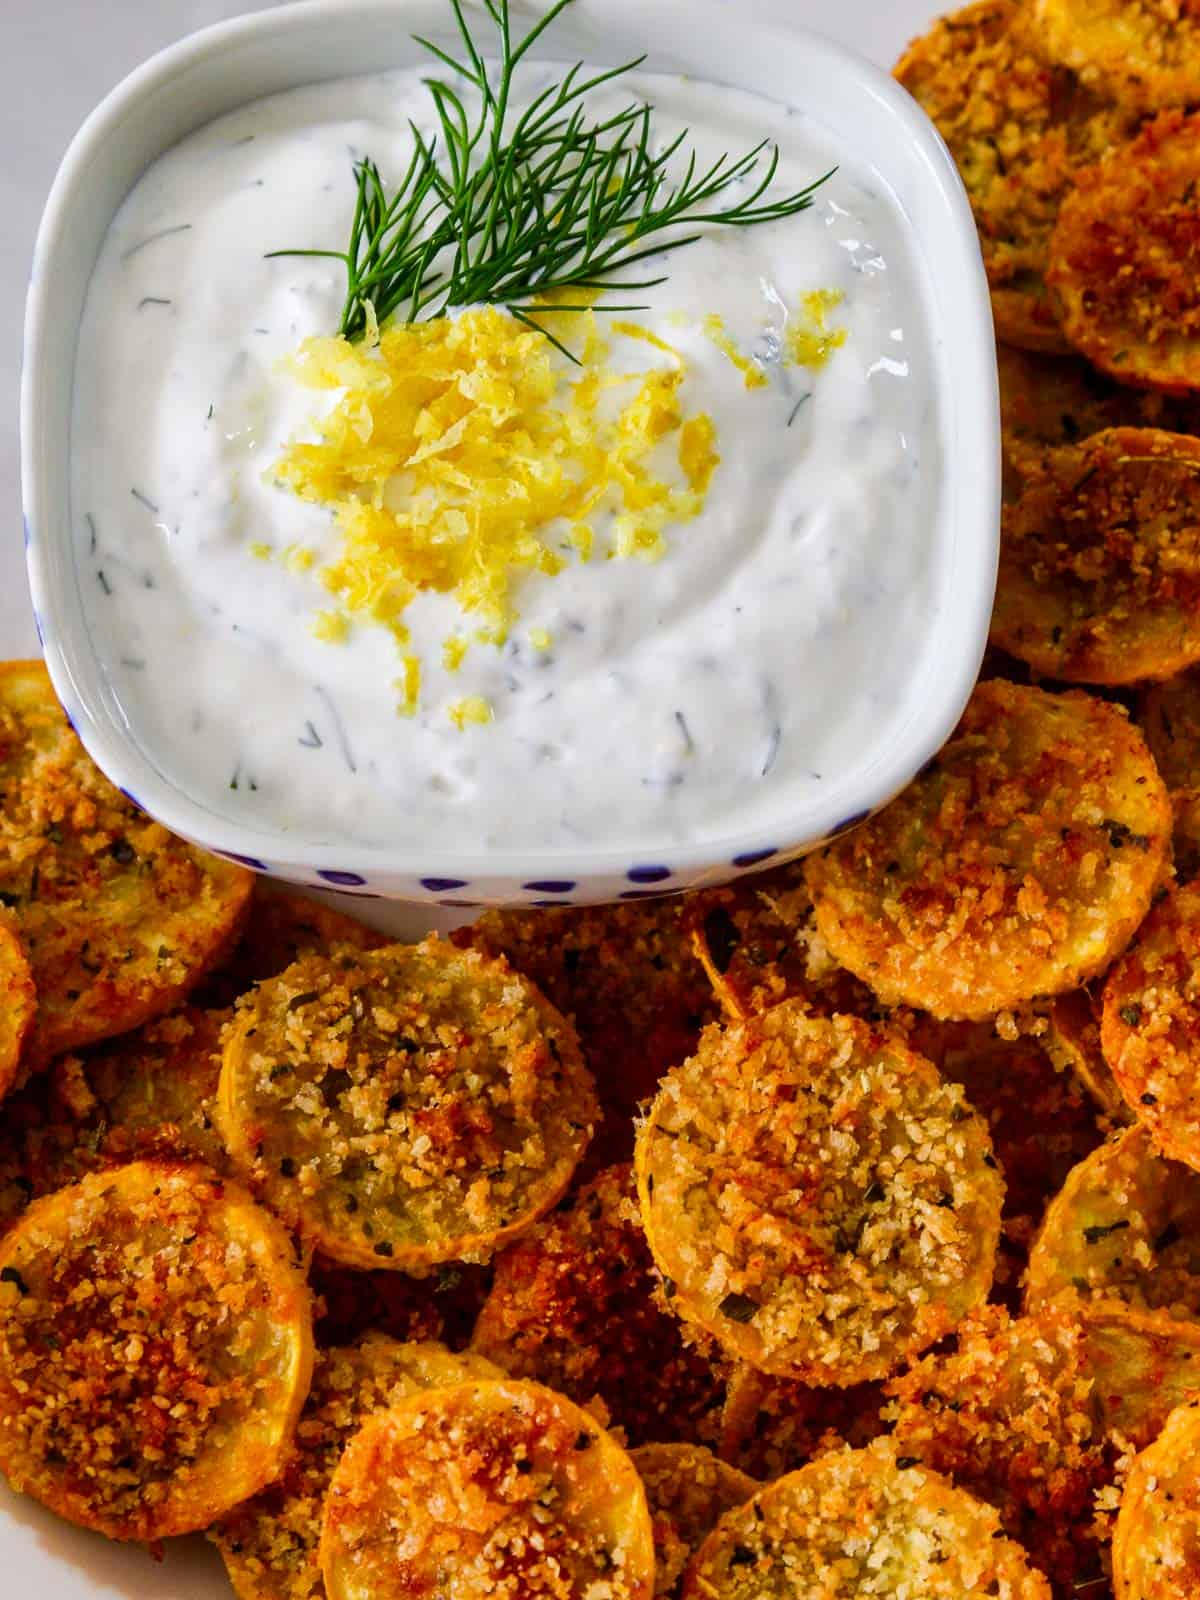 Looking down on a plate of zucchini chips with a yogurt dip garnished with fresh dill and lemon zest.